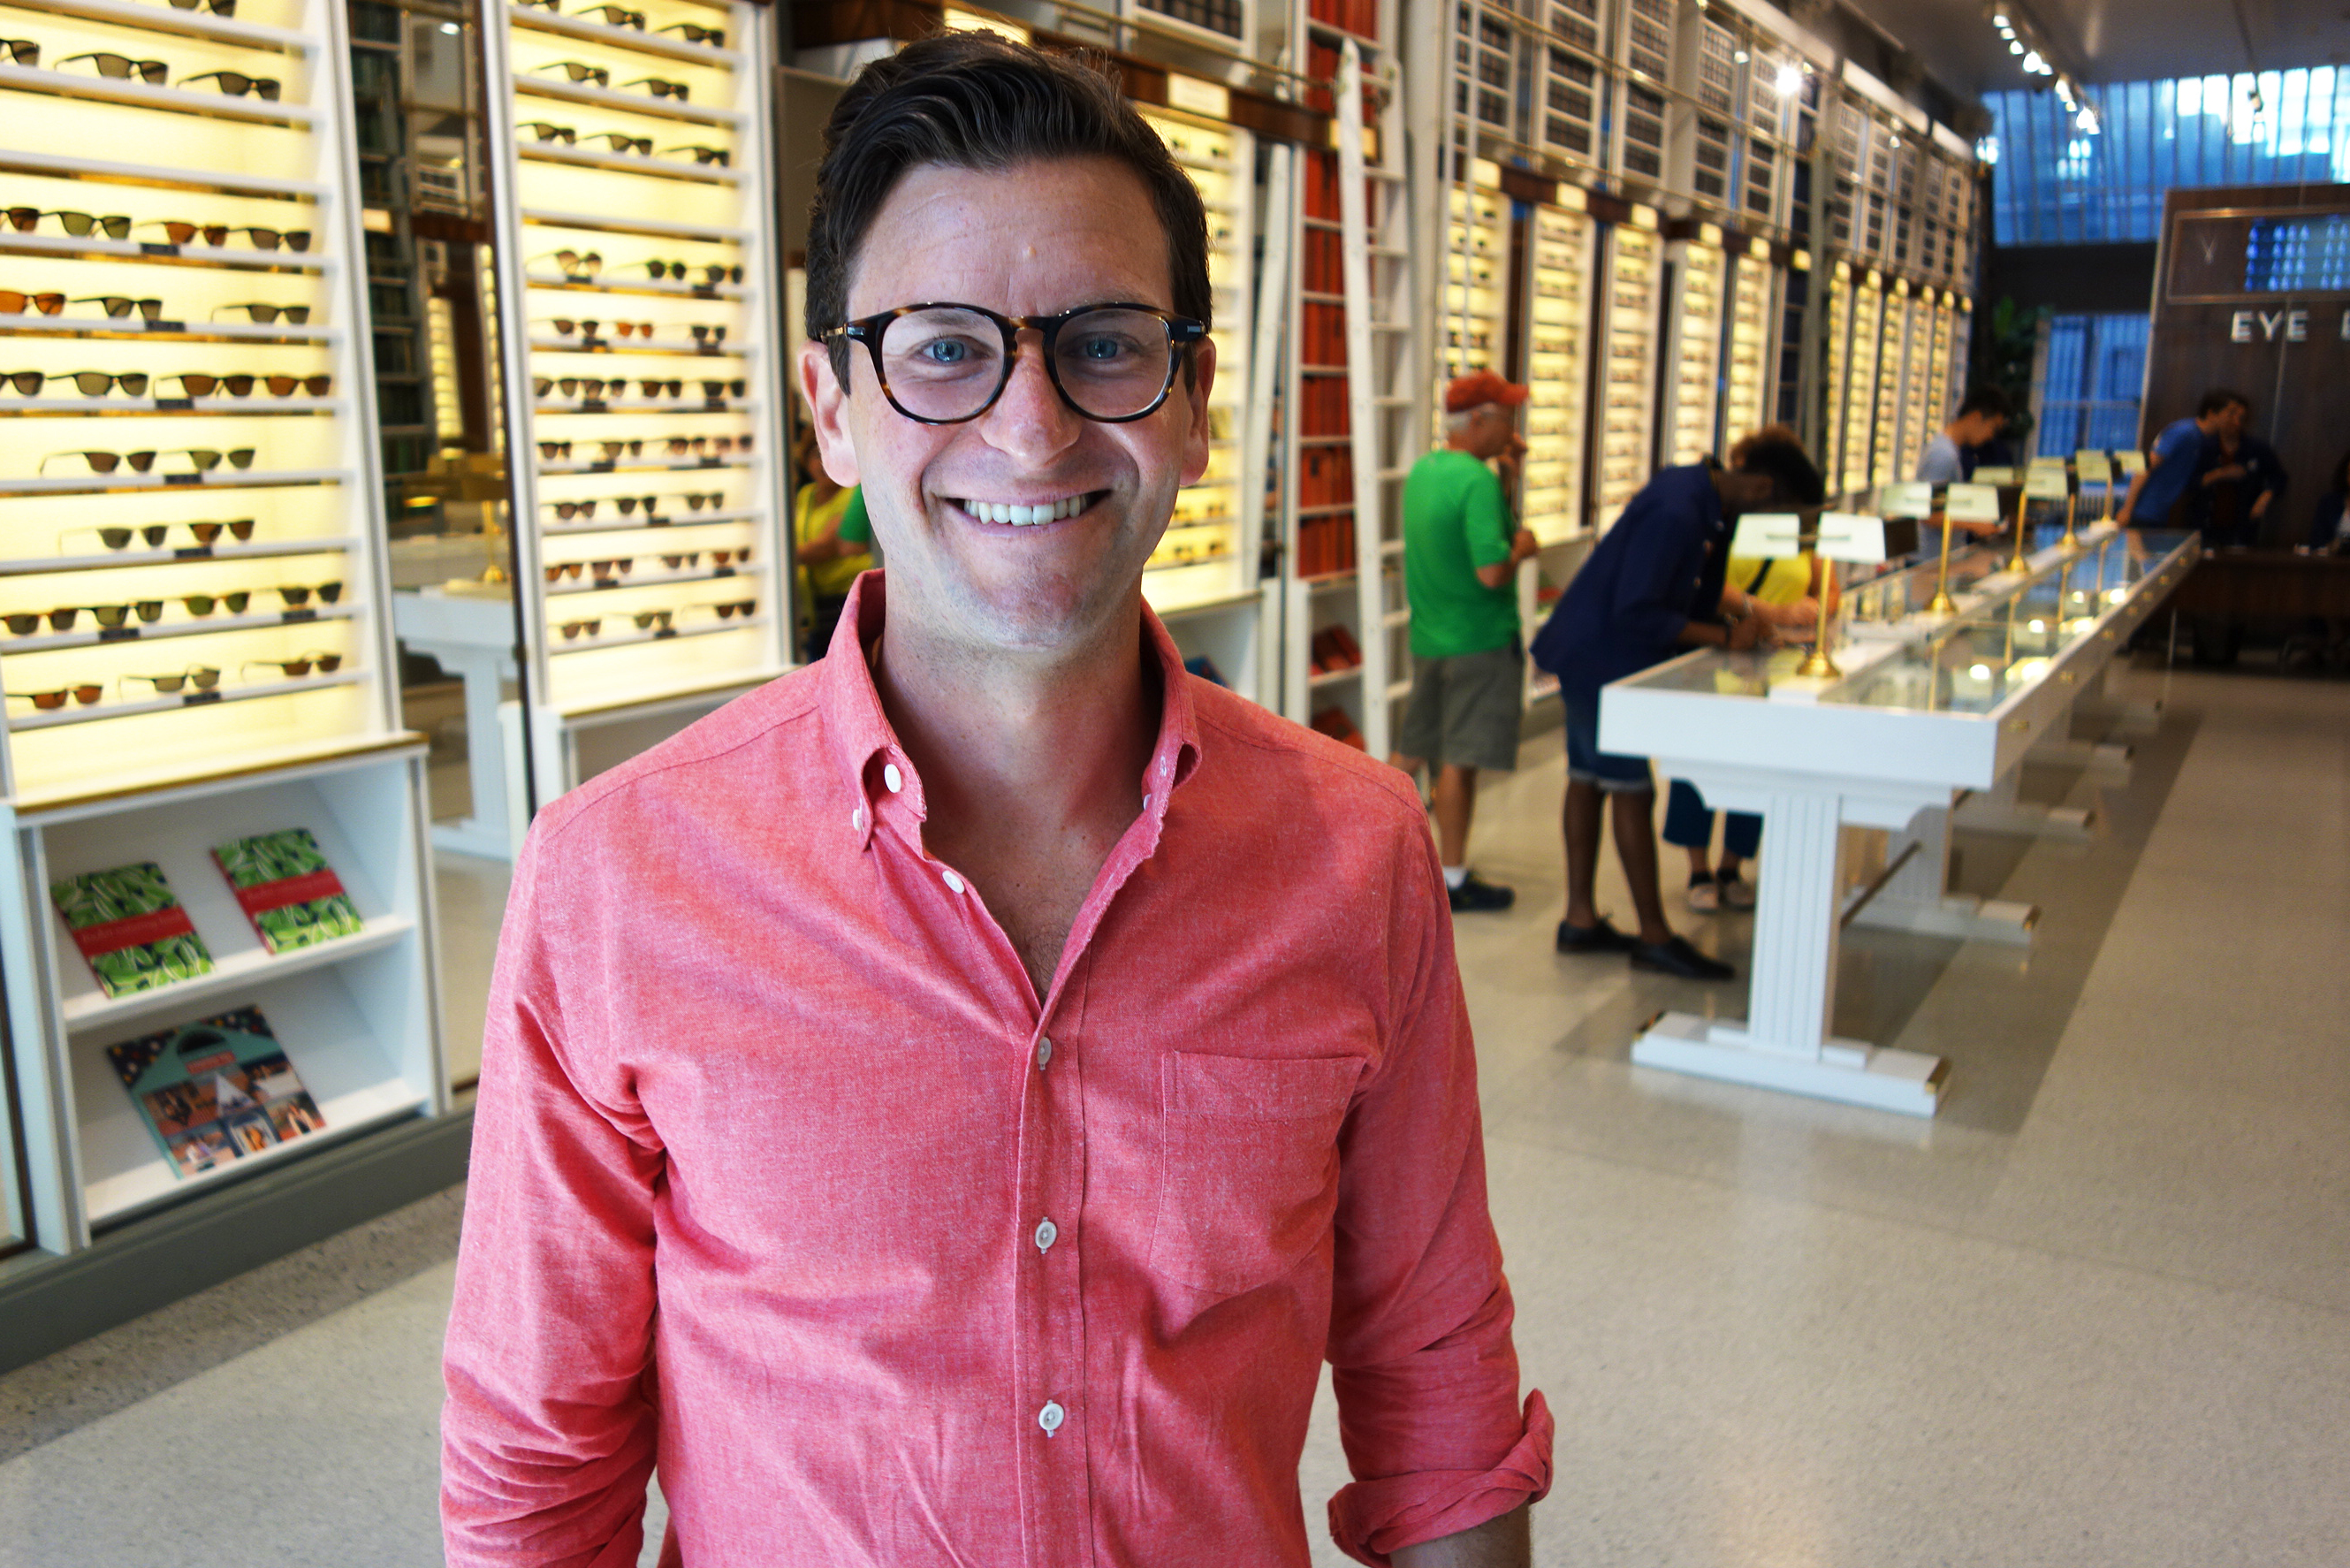 Dave Gilboa is co-founder of Warby Parker, the primarily online eyewear store. Warby Parker experimented with a variety of pop-up locations before settling into a longer-term lease.